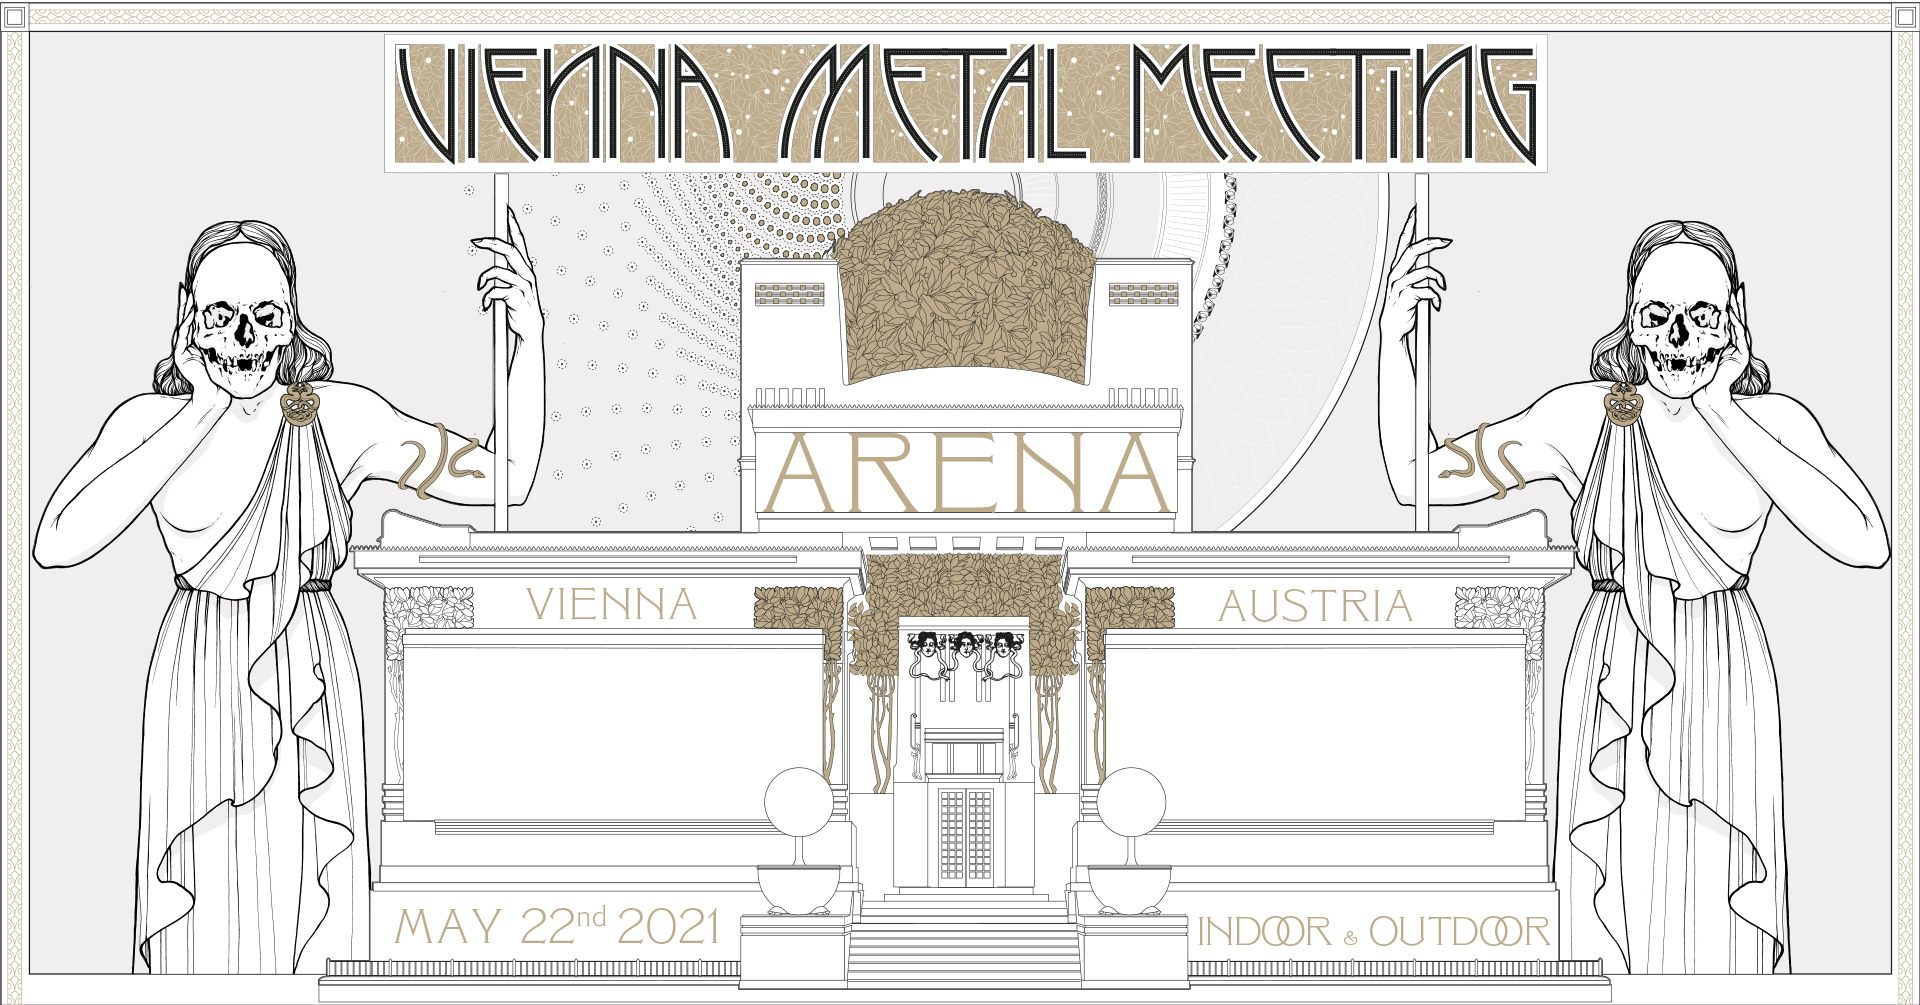 Cryptosis confirmed for Vienna Metal Meeting 2021